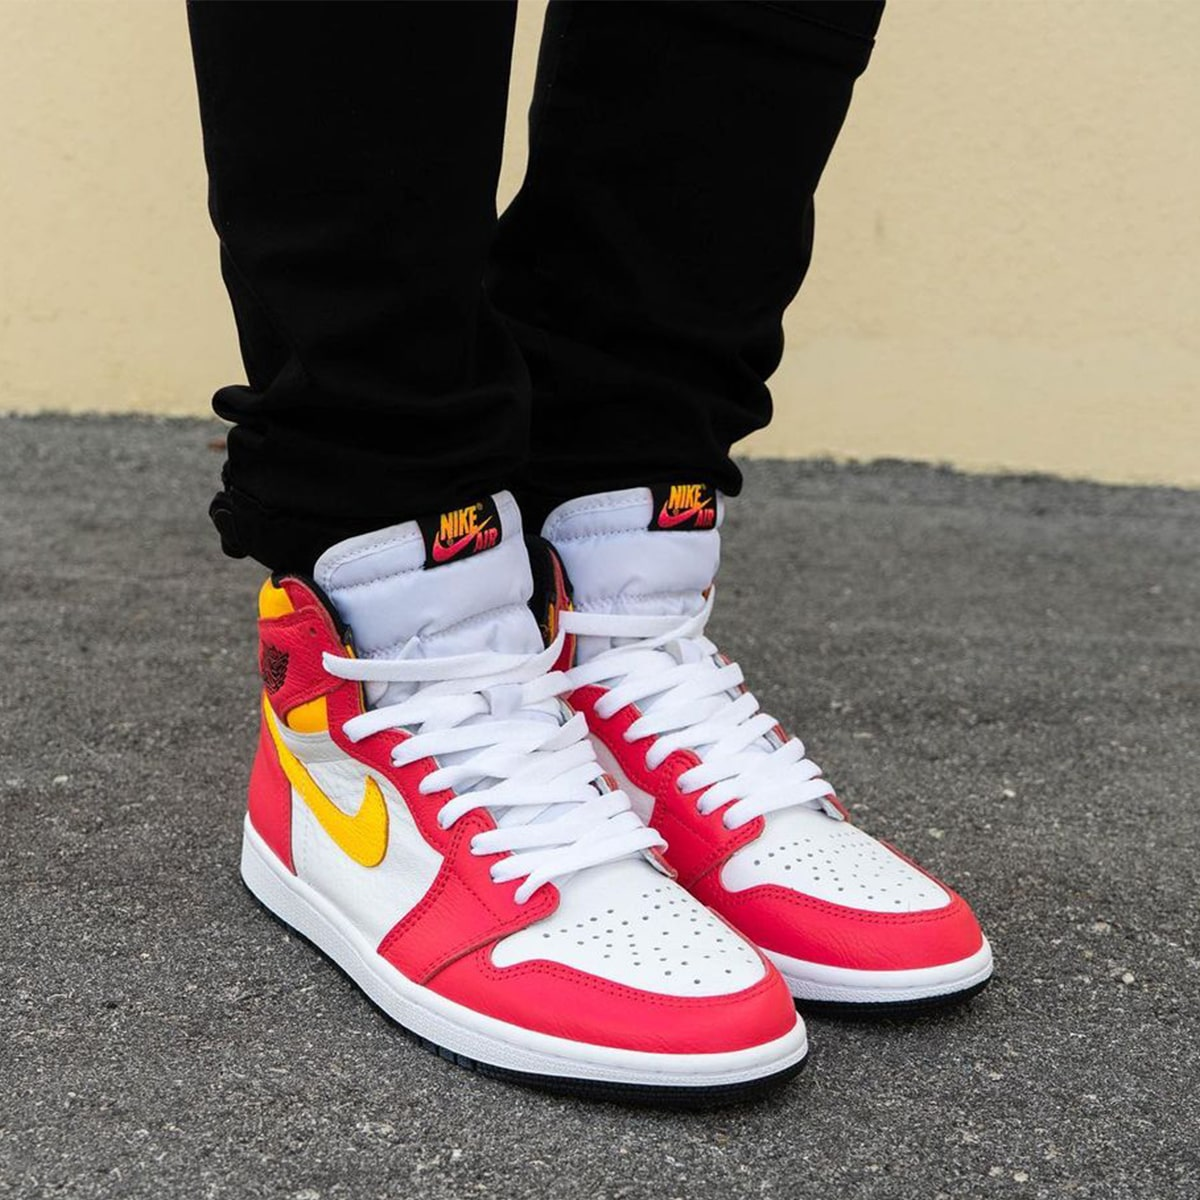 """Where to Buy the Air Jordan 1 High """"Light Fusion Red"""